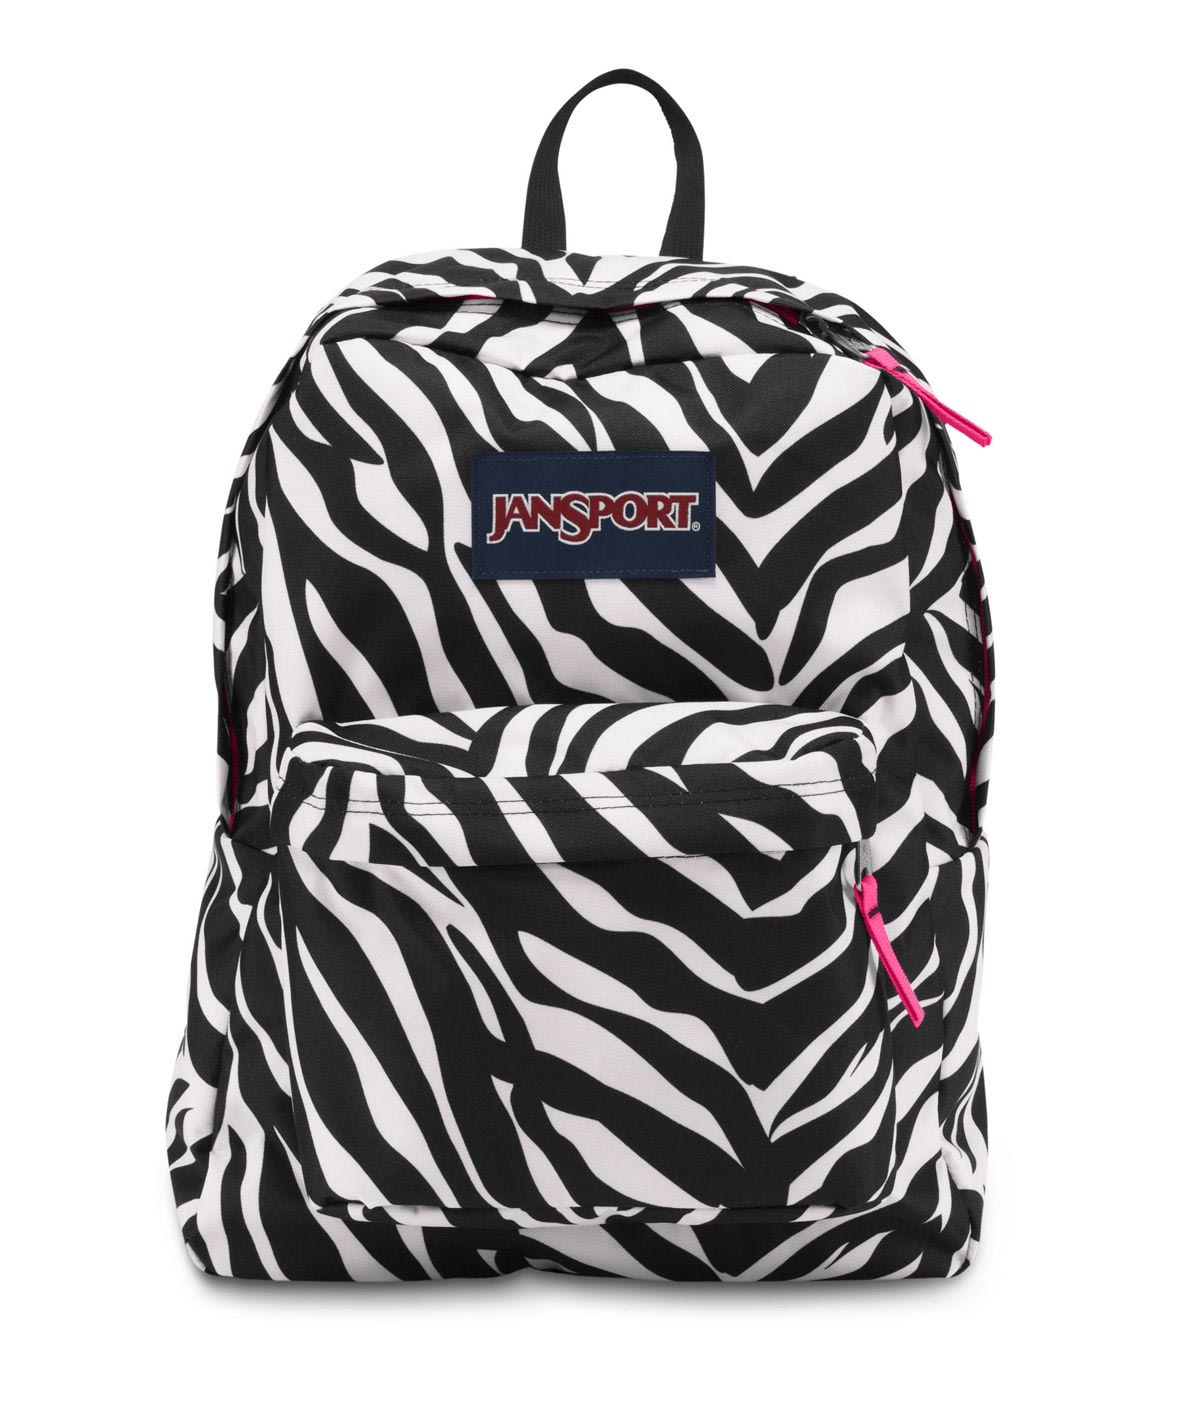 Jansport Backpacks For Teenage Girls jMBXgGCN